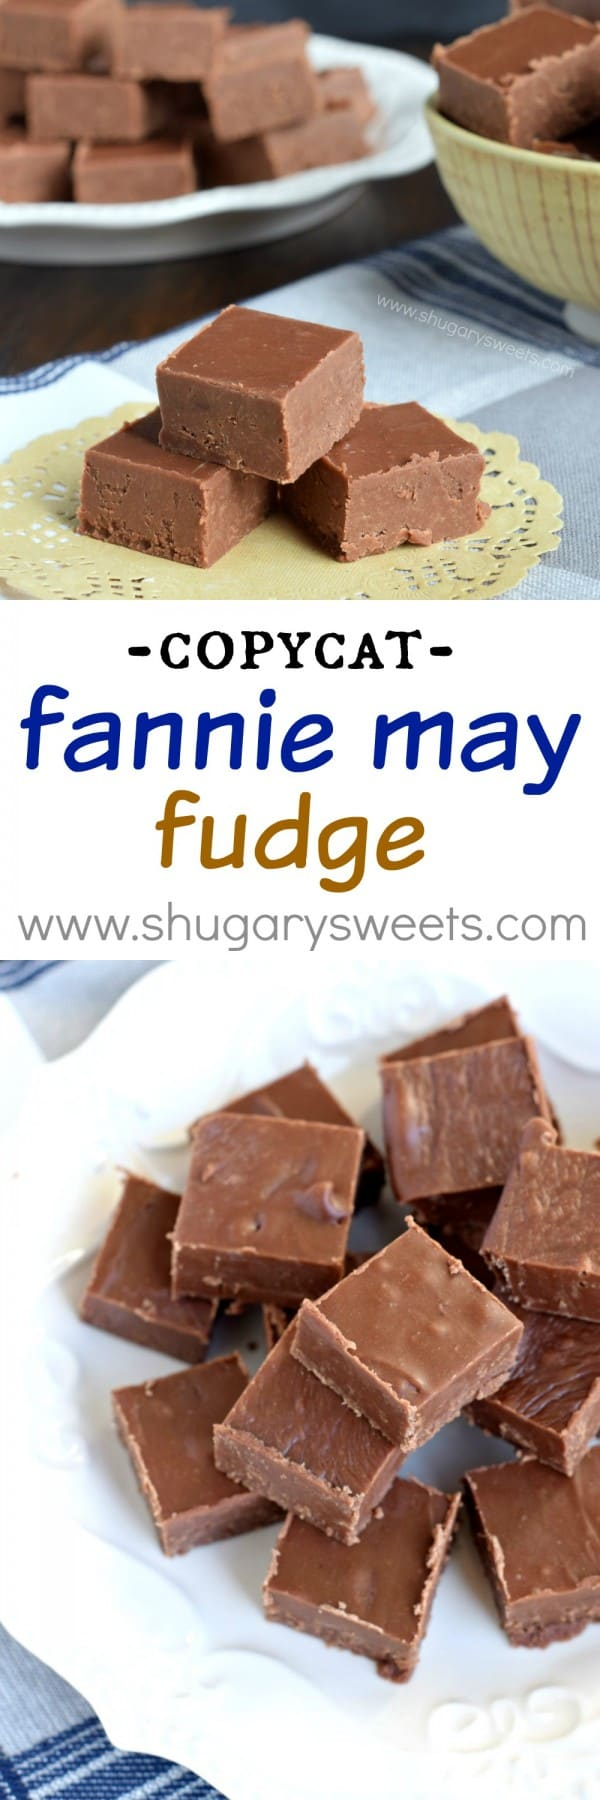 Rich, decadent, copycat Fannie May Fudge. It's the perfect chocolate fudge recipe for any time of year, no candy thermometer needed!